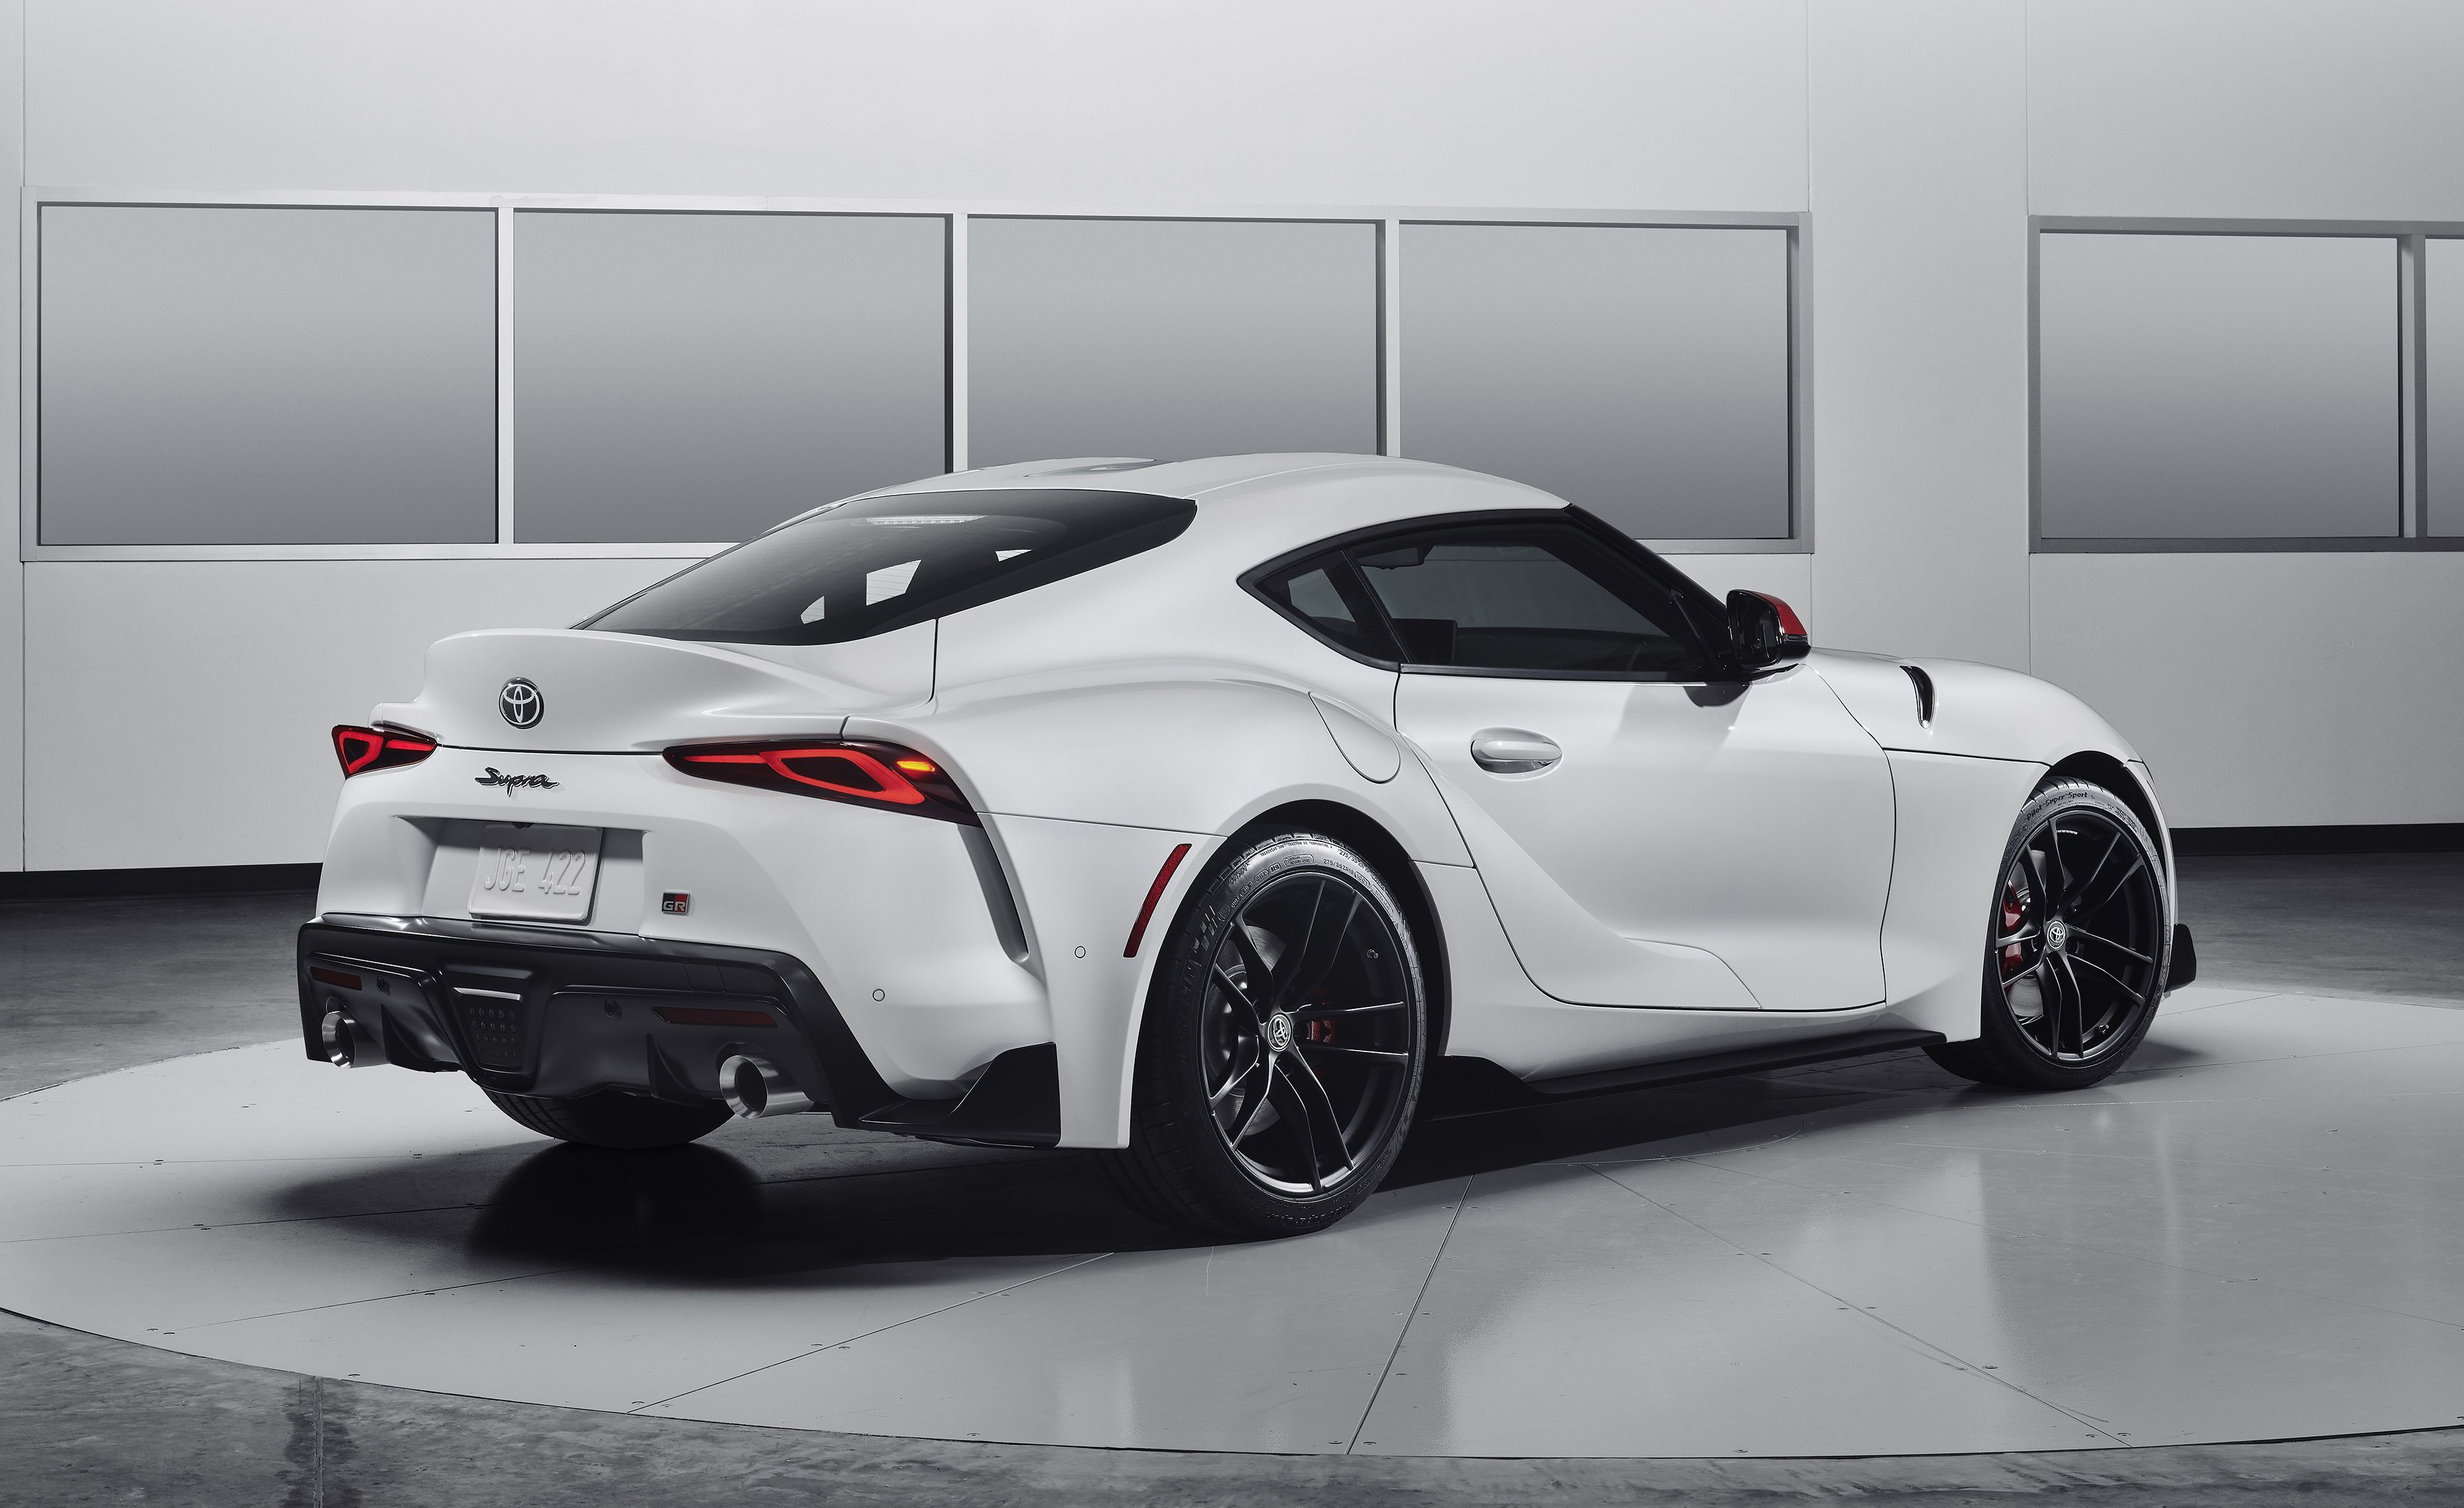 Every Photo Of The All New 2020 Toyota Supra Toyota Supra New Toyota Supra Sports Car